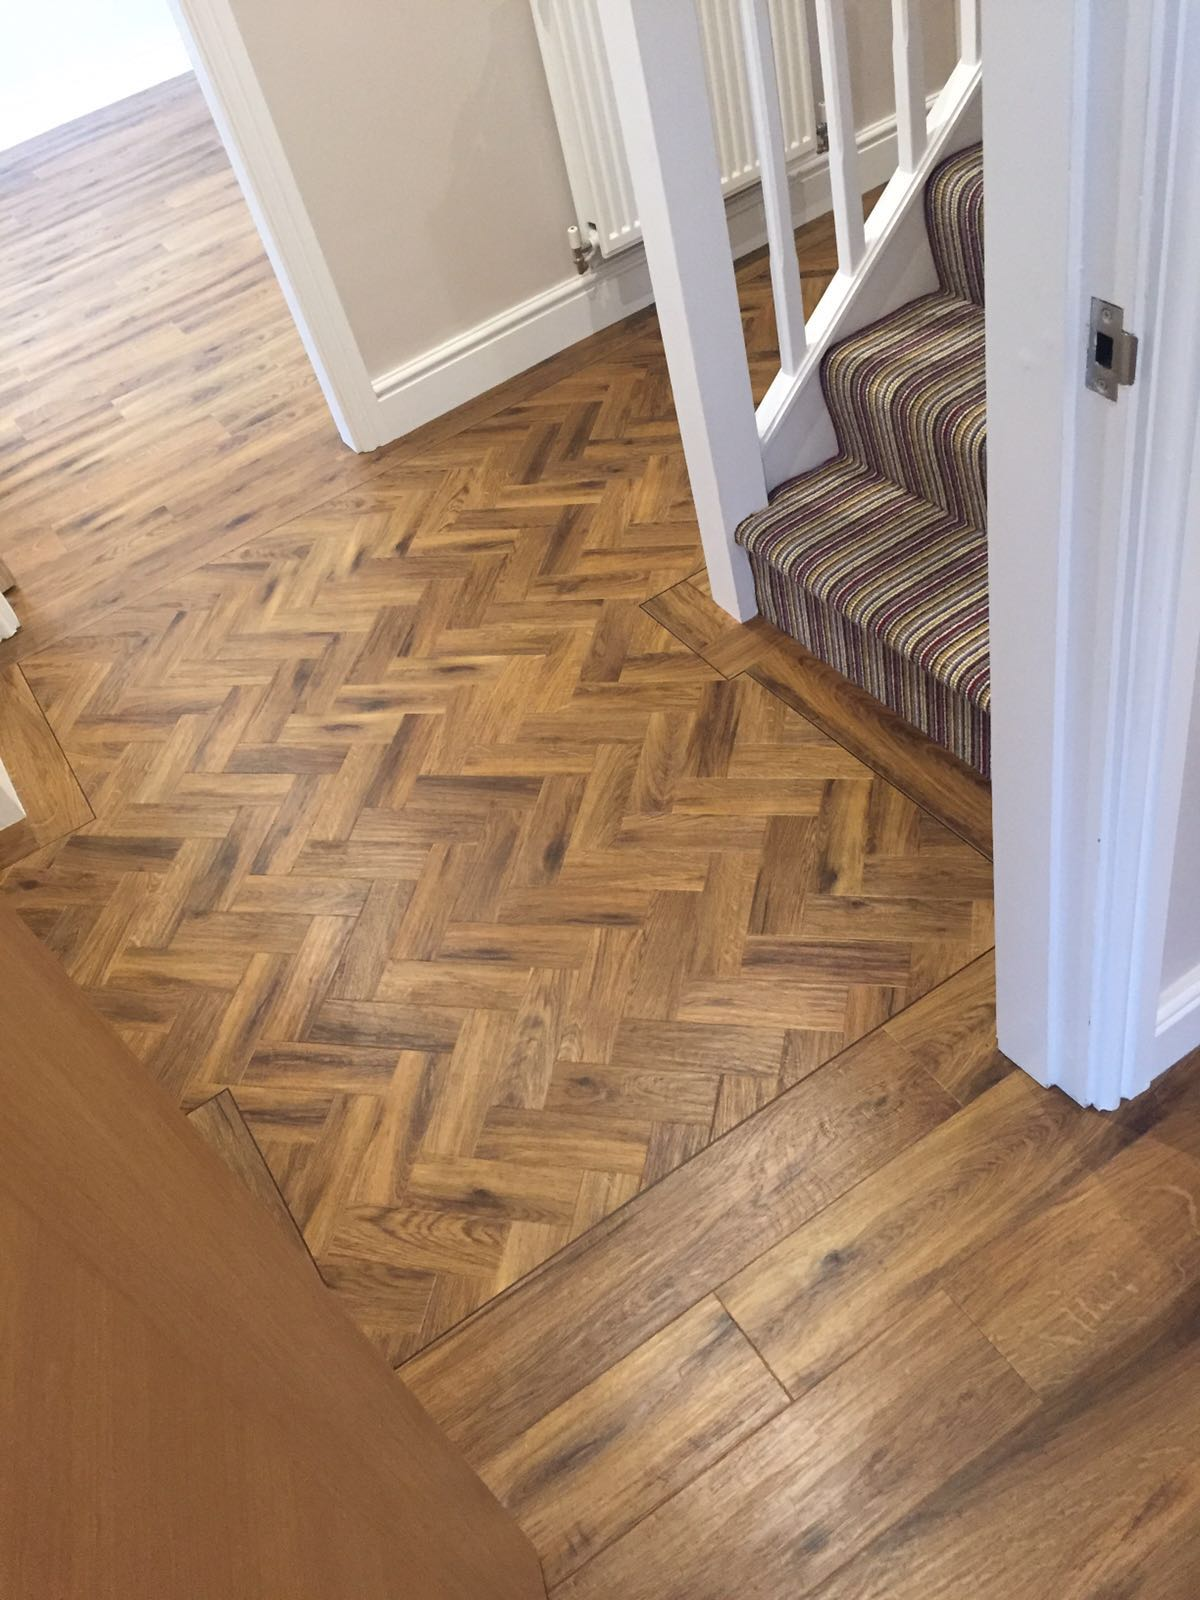 Showing Karndean Art Select Ap02 Auburn Oak Parquet And Plank Combination We Installed To A Hallway In Knutsford Did The Carpet On Stairs Too